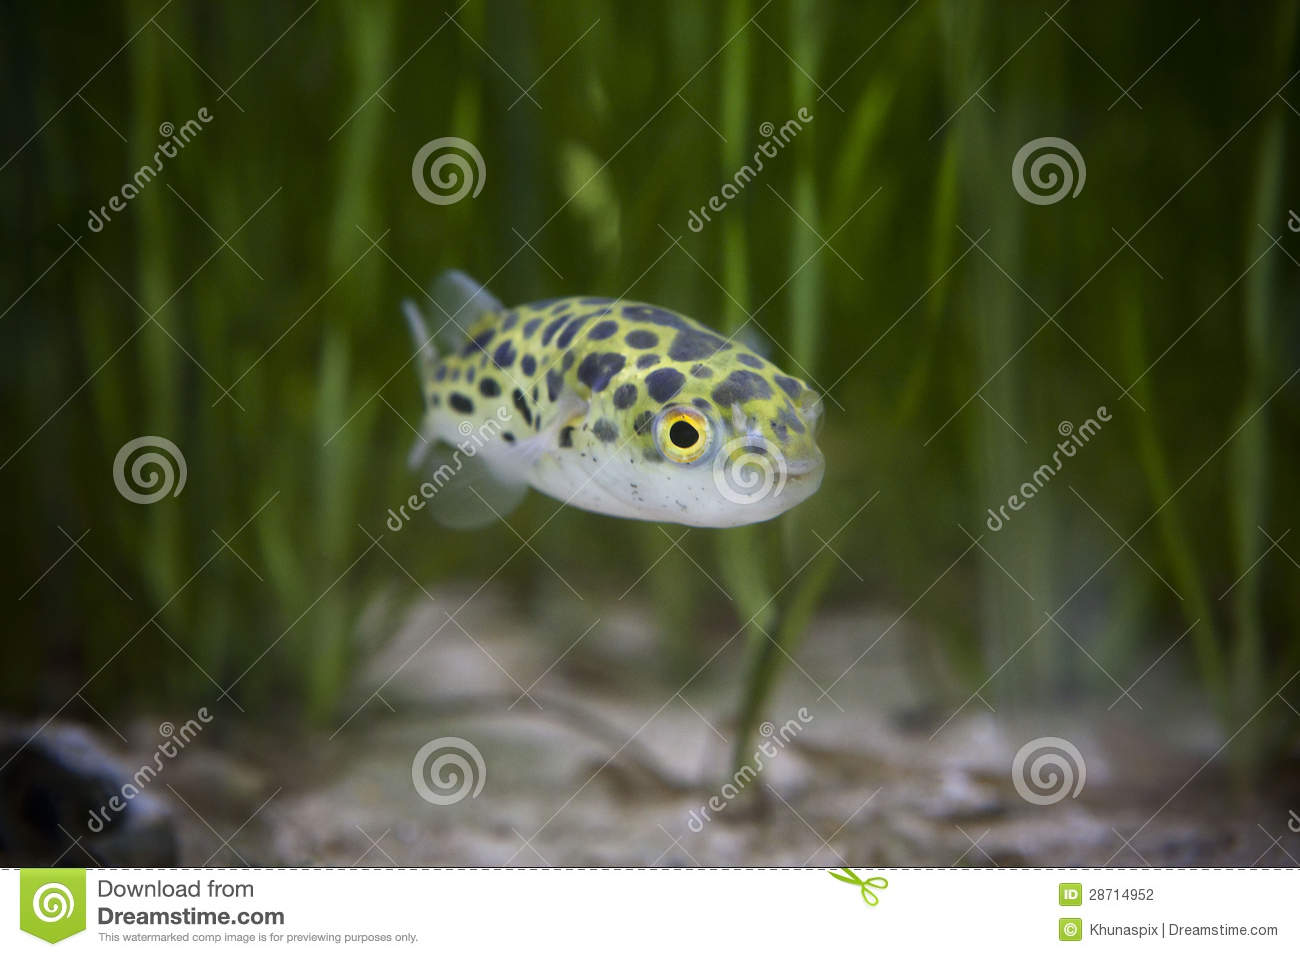 Download Kingkong Fish Or Puffer Fish Or Green Bowl Fish Or Green Spotted Puffer Stock Photo - Image of cool, save: 28714952